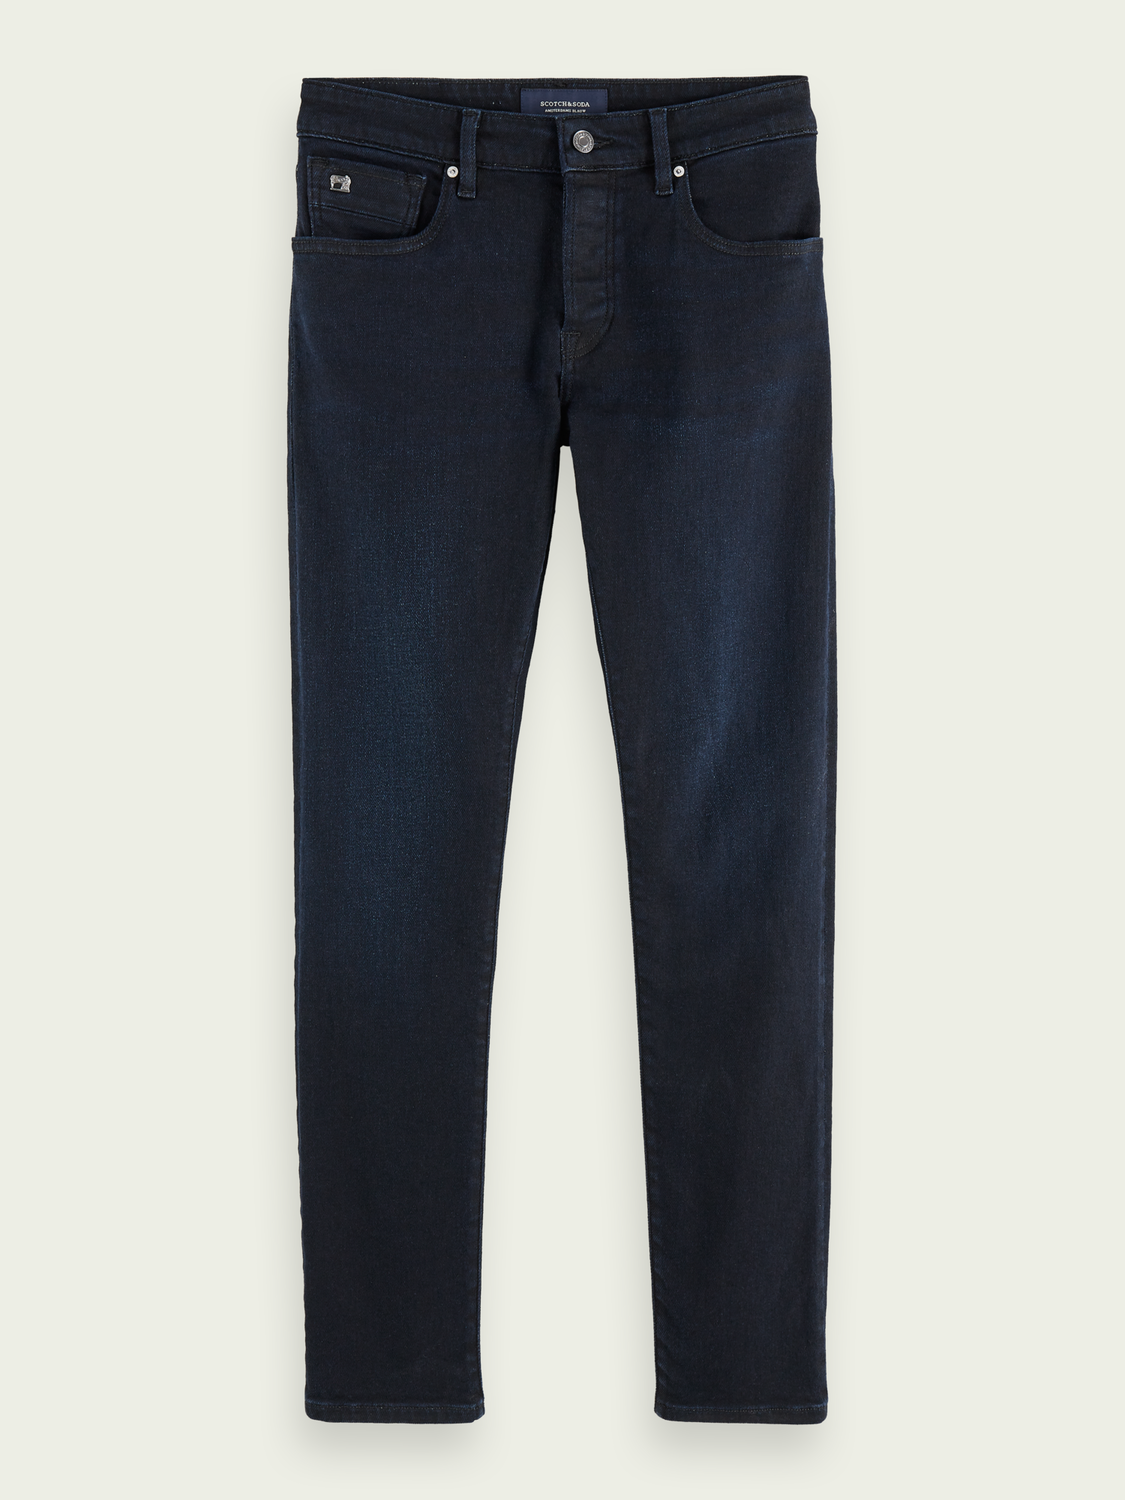 Herren Ralston – Ready To Go | Slim Fit Jeans